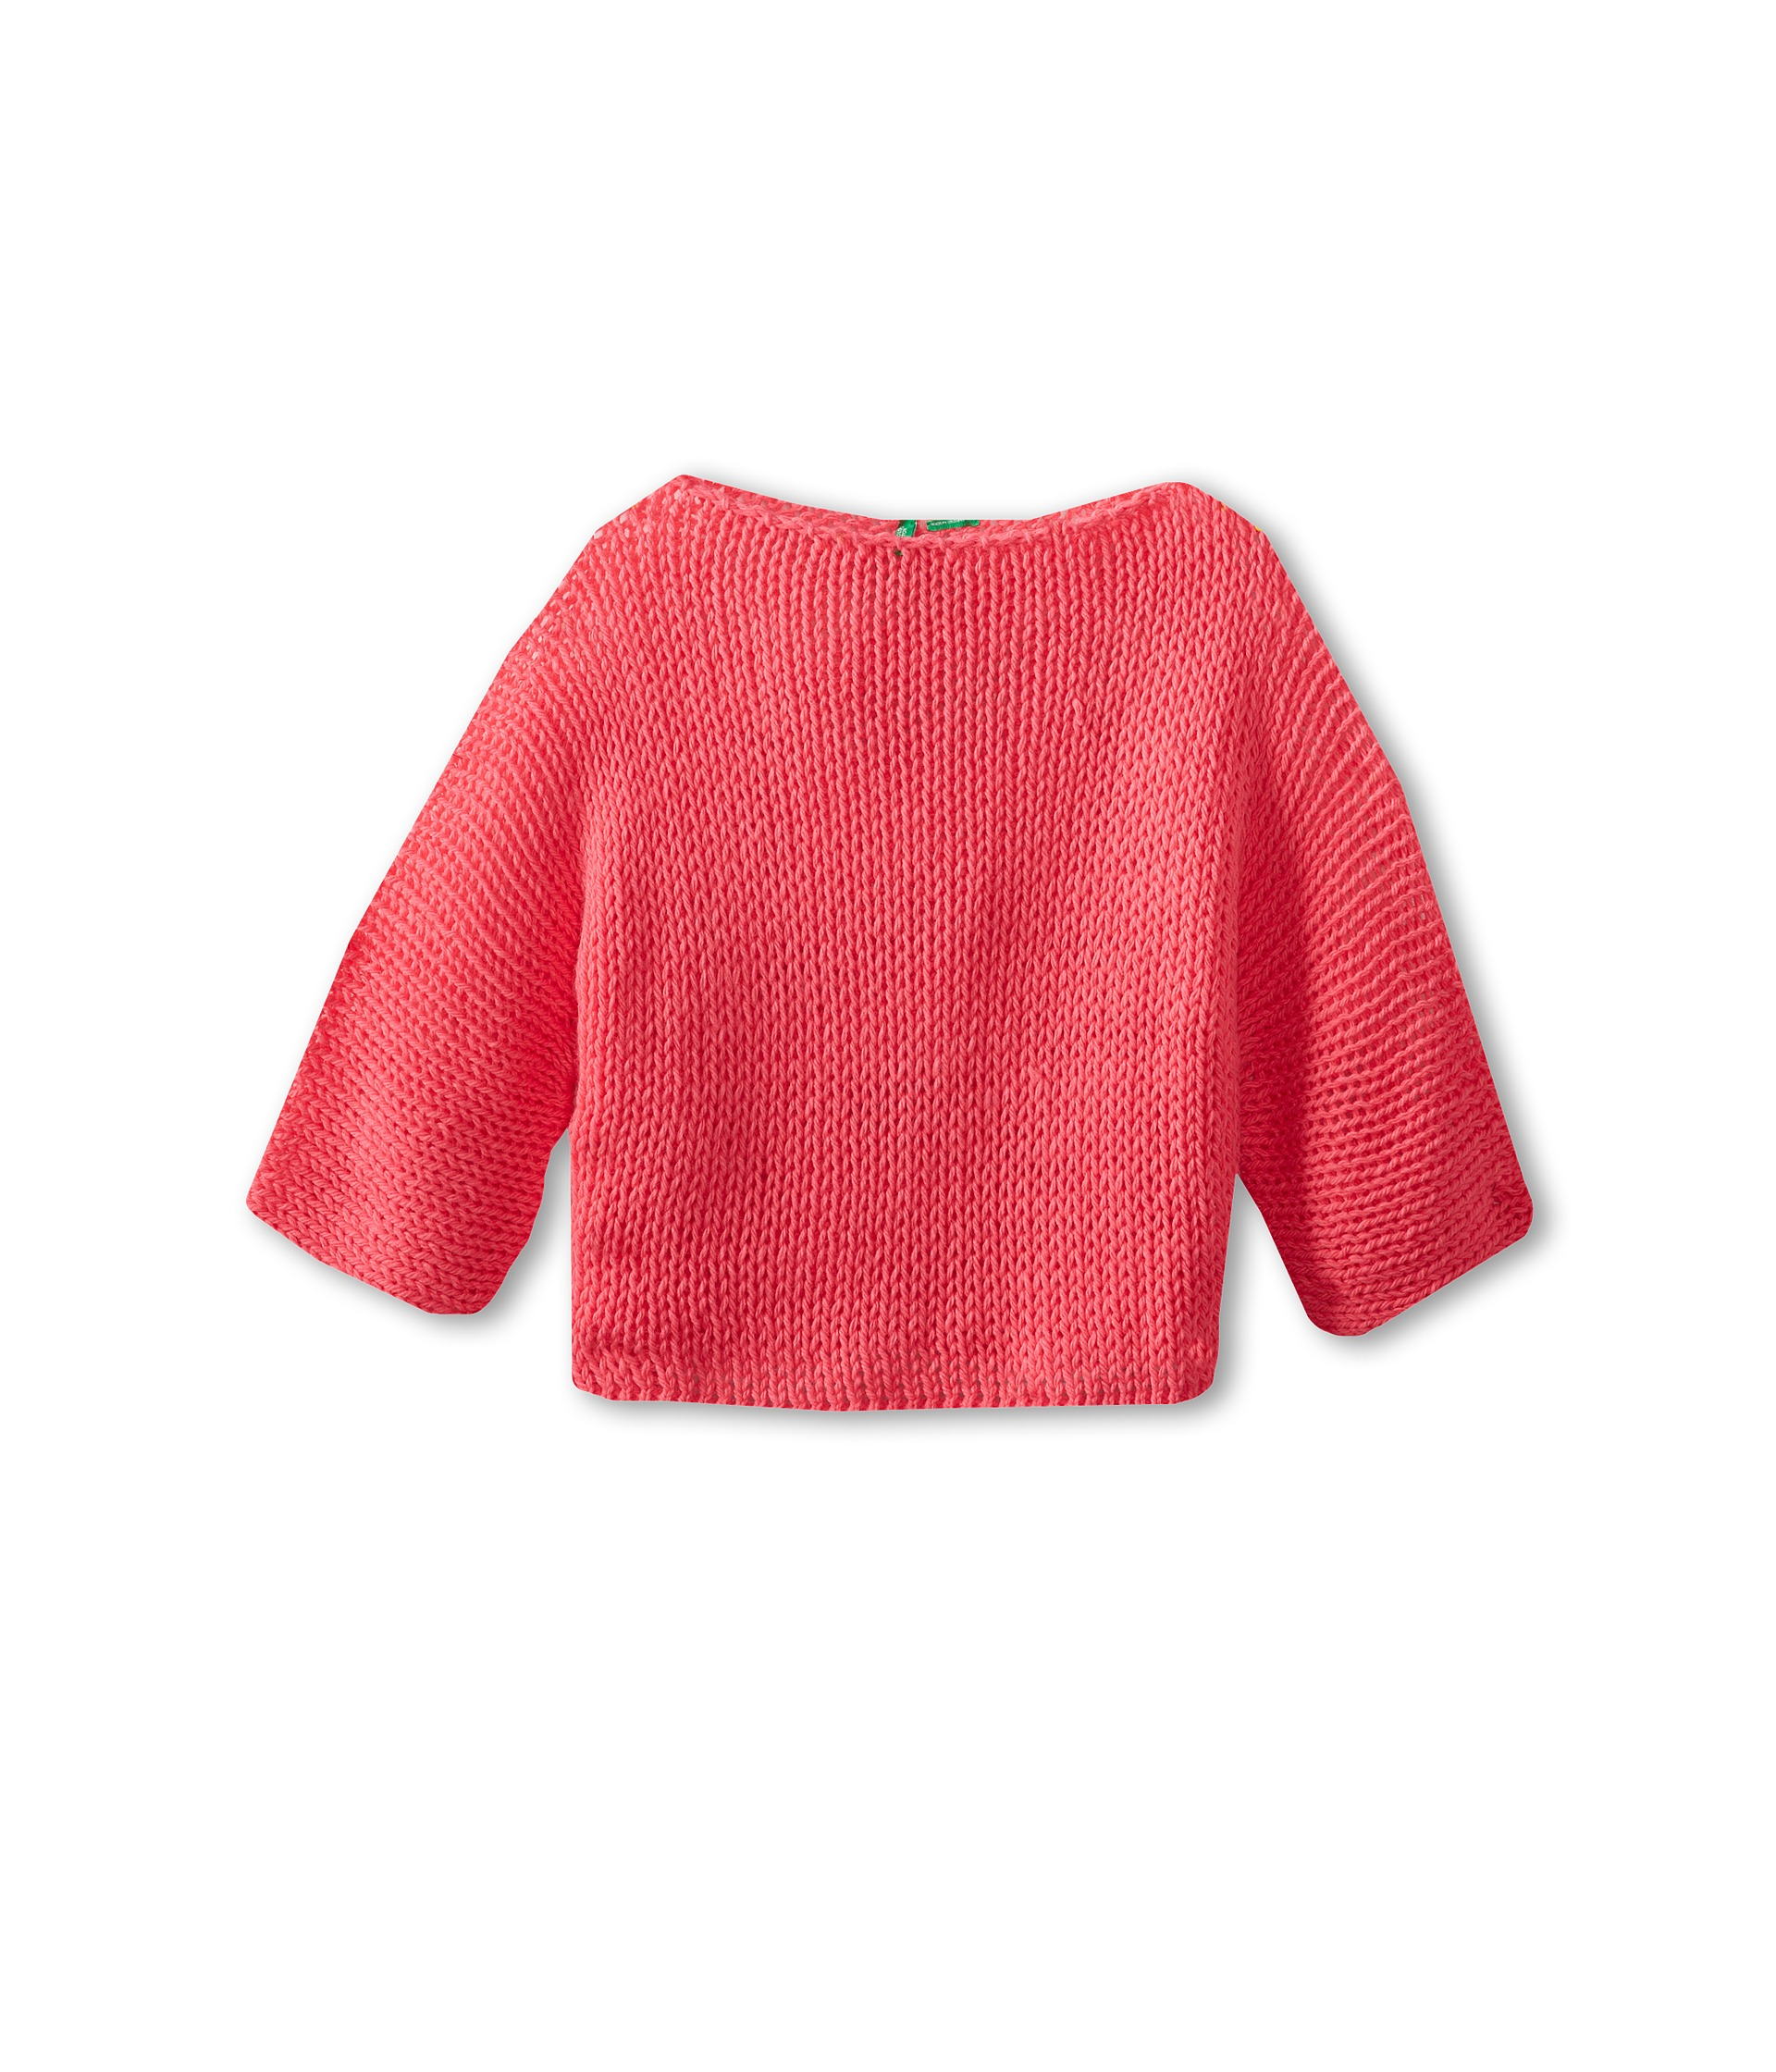 United Colors Of Benetton Kids Girls Short Cropped Knit Sweater Little